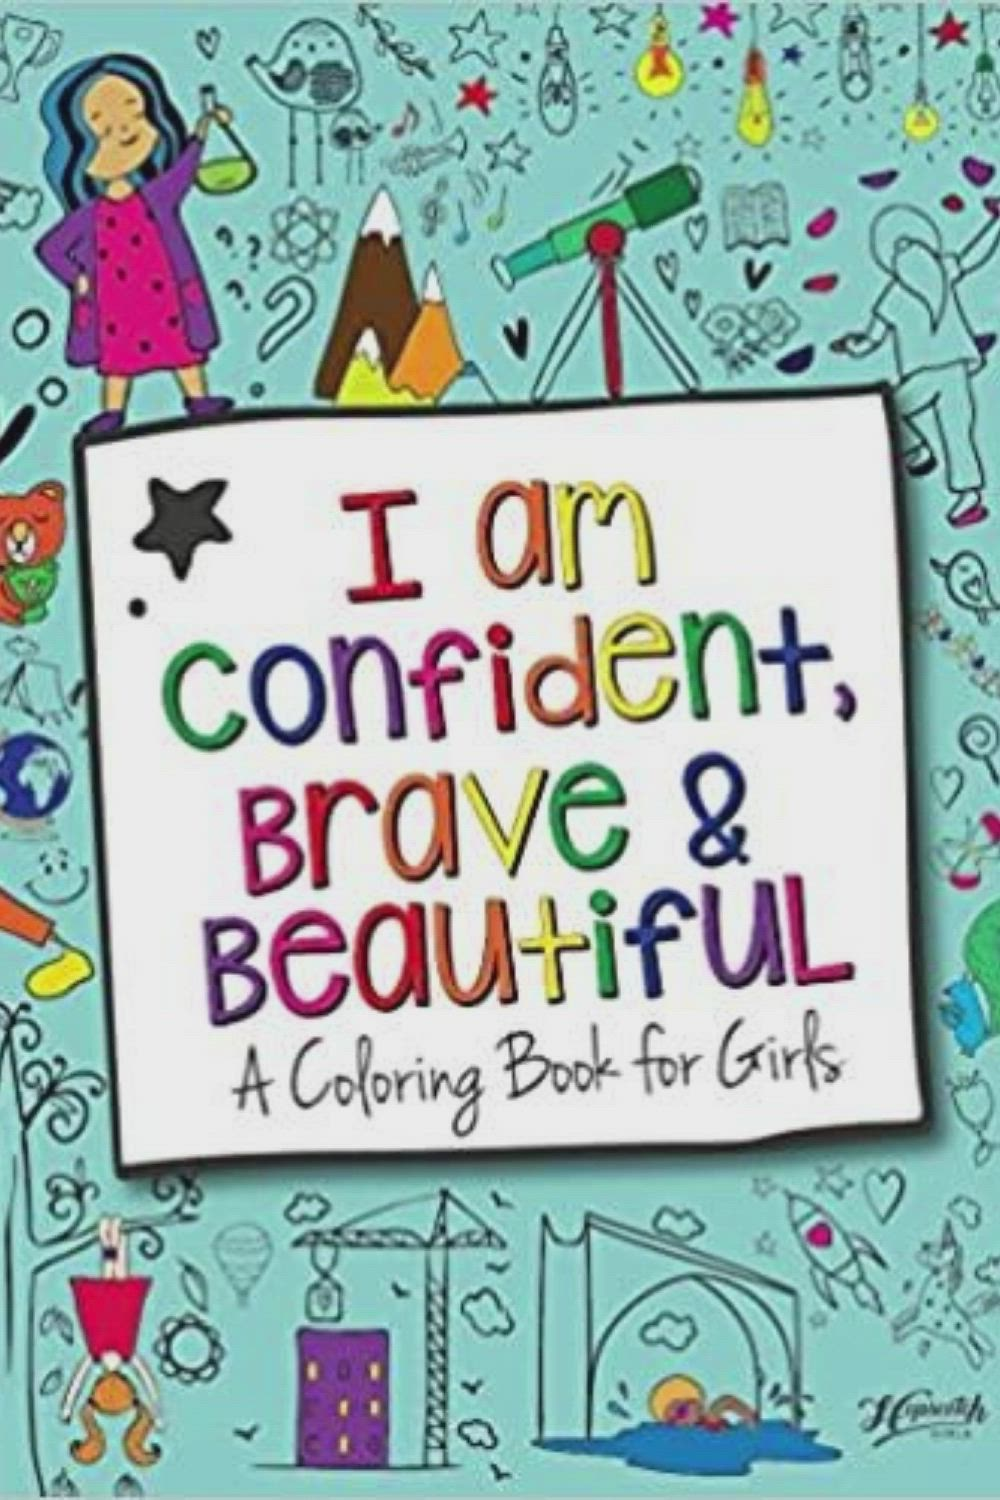 I Am Confident Brave Beautiful A Coloring Book For Girls Hopscotch Girls 9780692927991 Amazon Com Books Coloring Books Book Girl Books